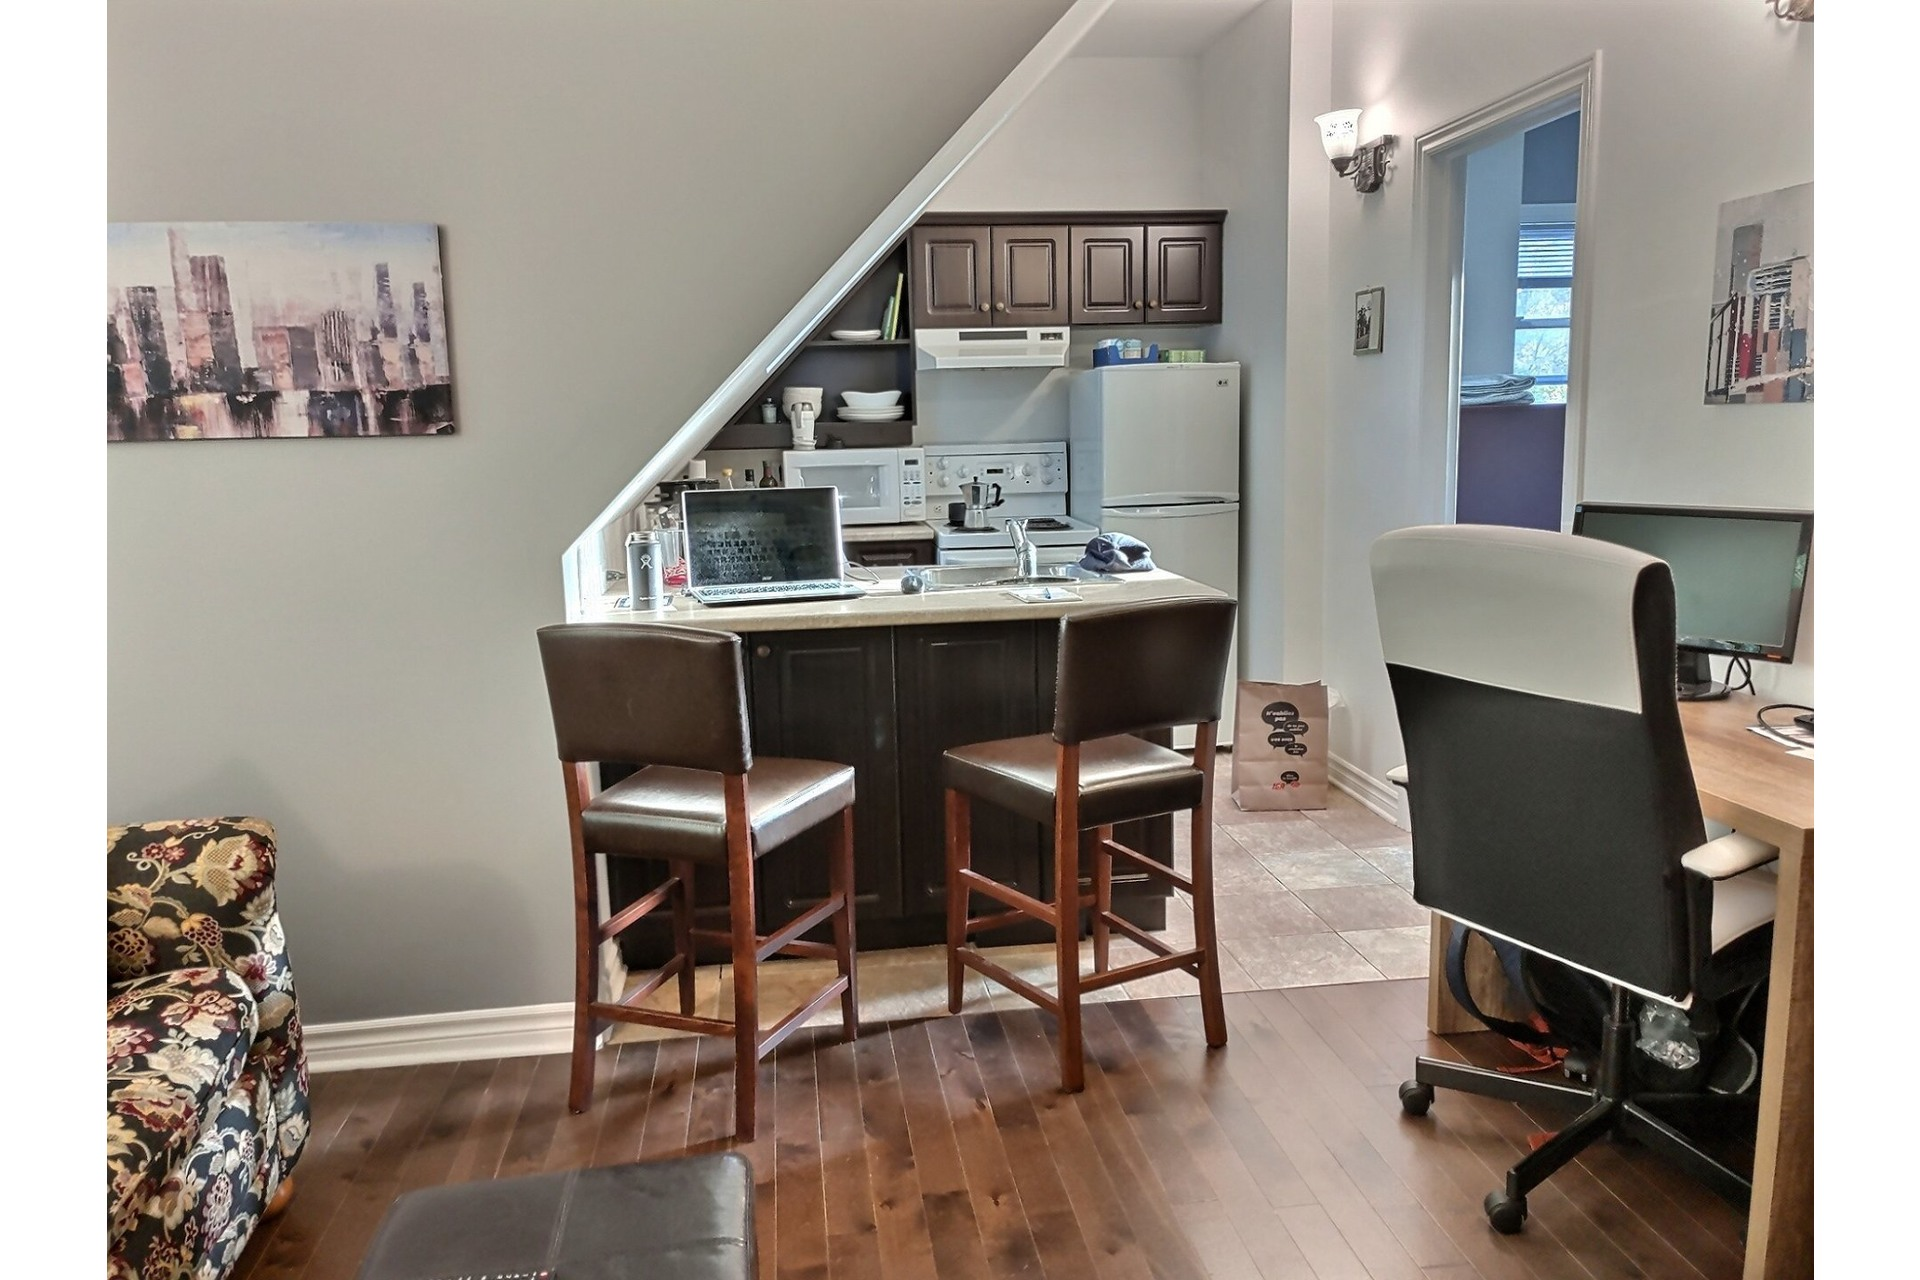 image 4 - Apartment For rent Dorval - 4 rooms